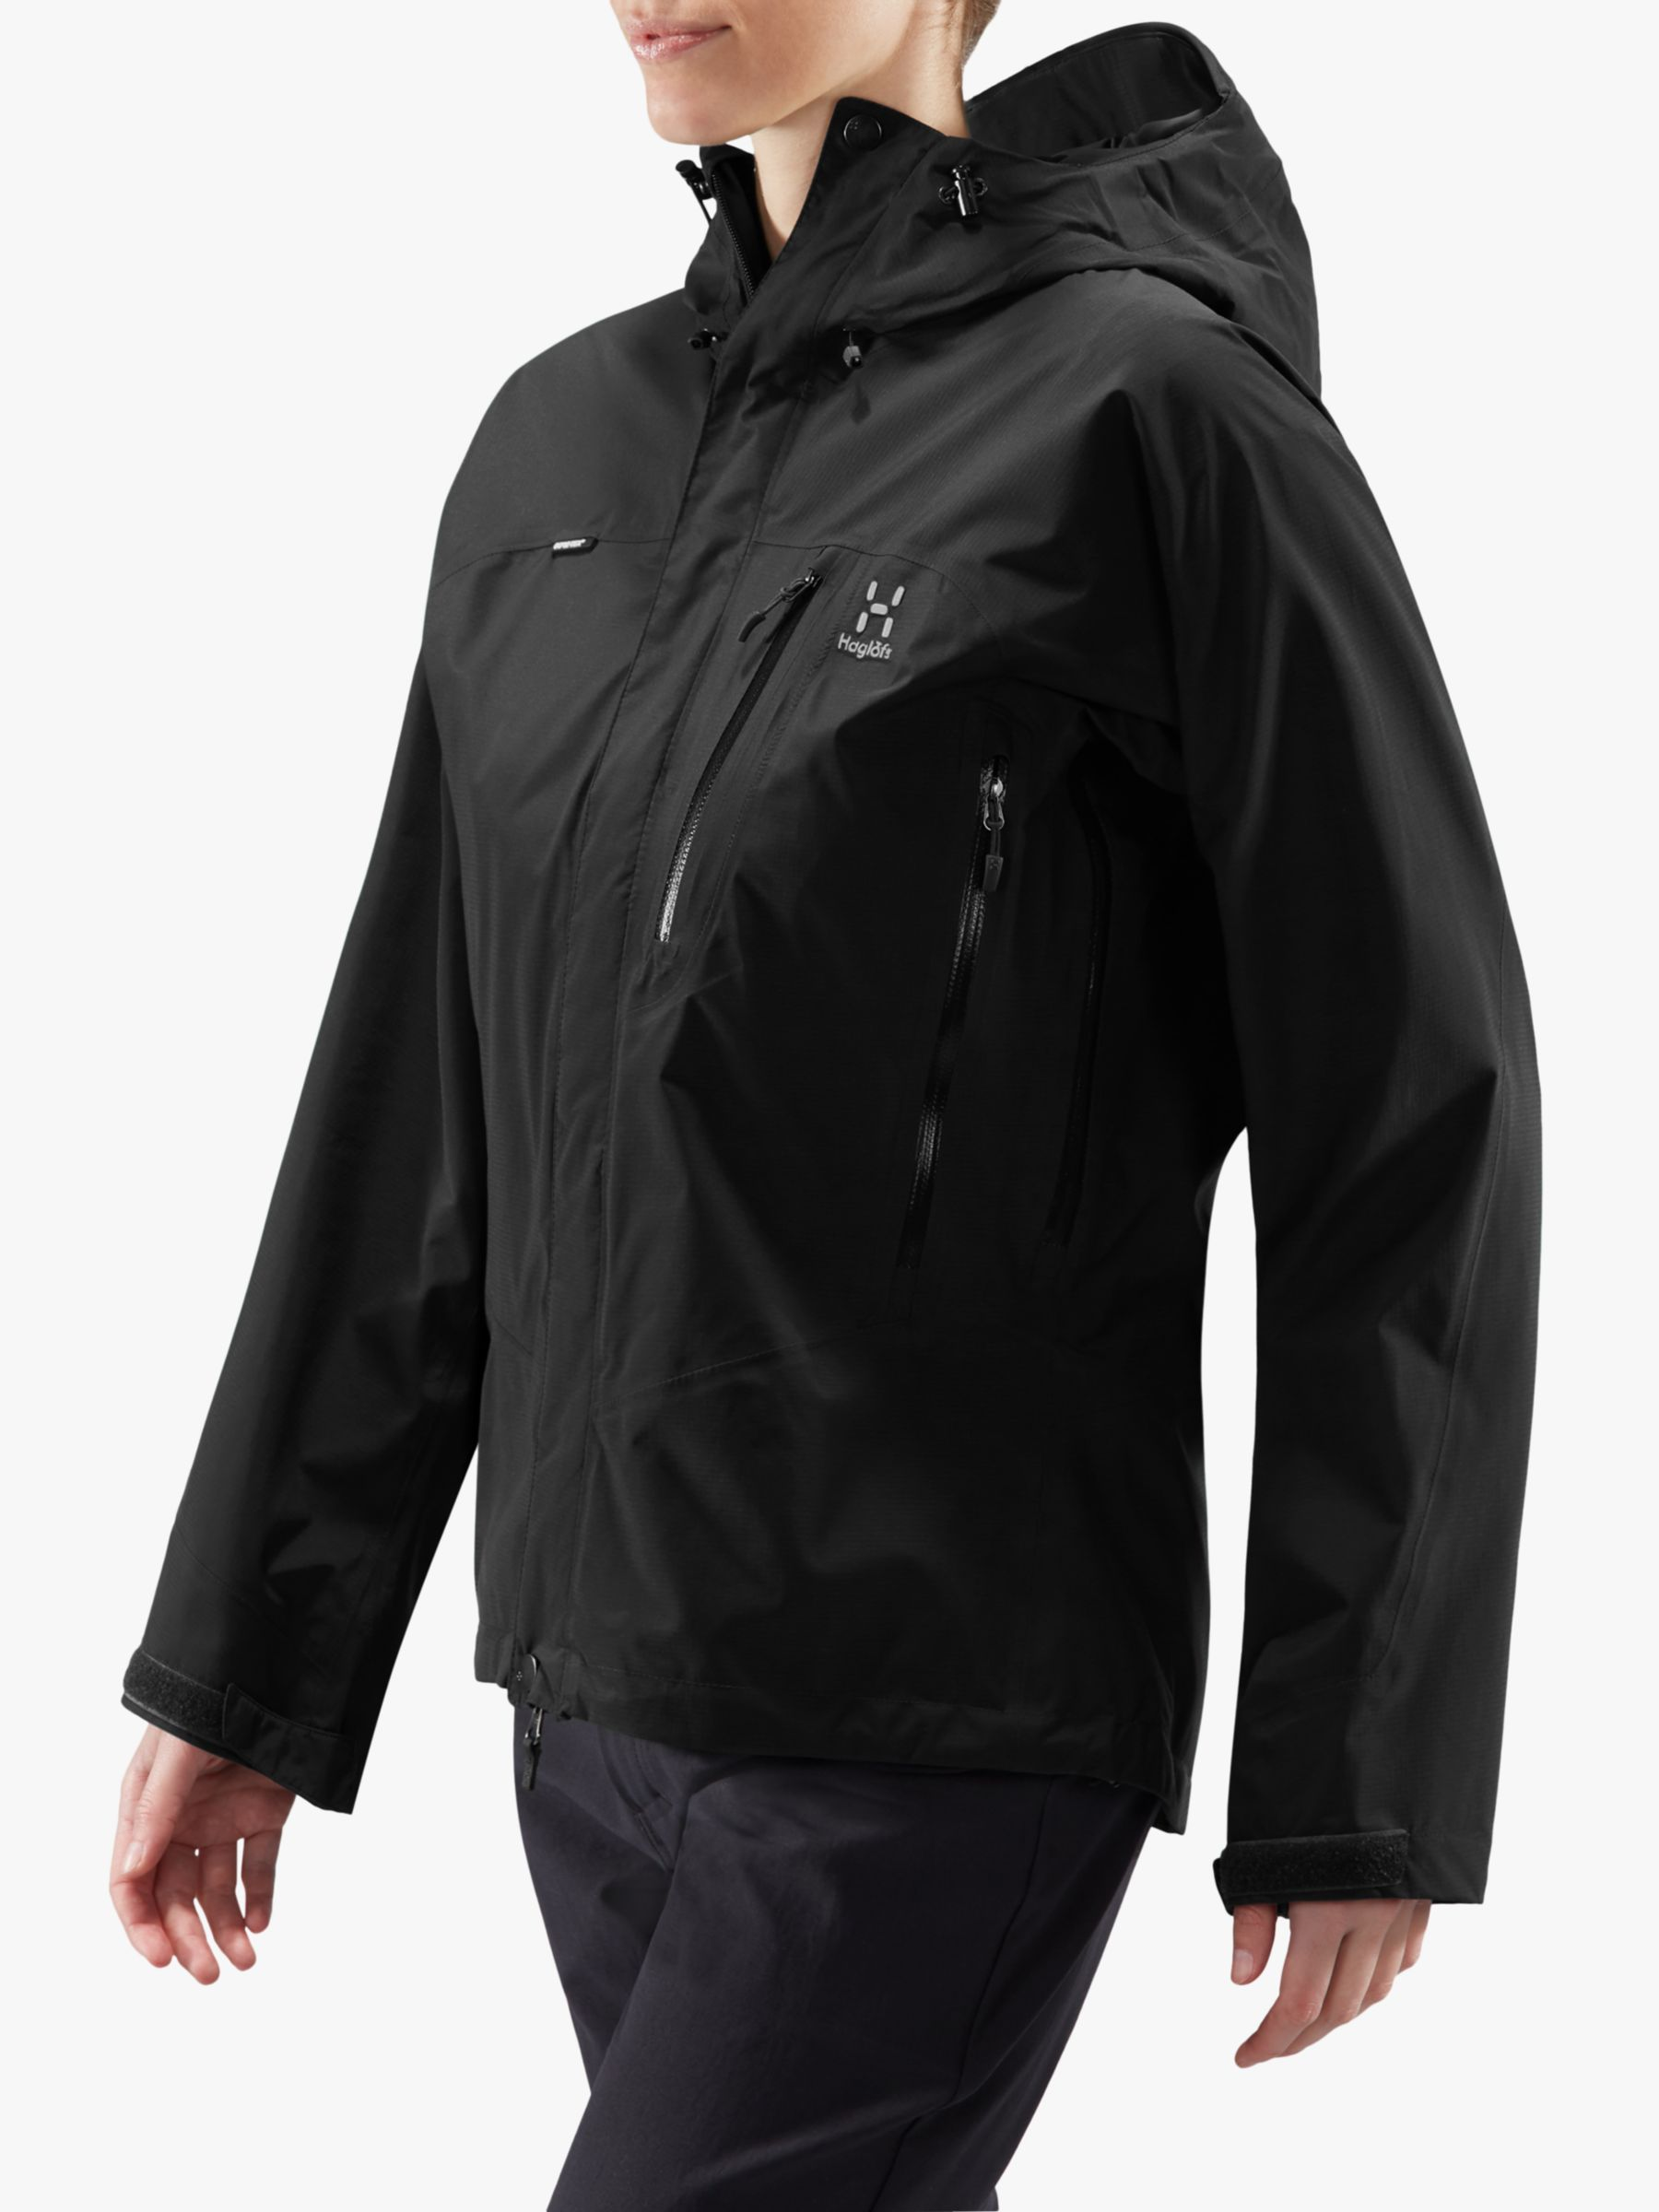 Haglofs Haglöfs Astral Women's Waterproof Gore-Tex Jacket, True Black